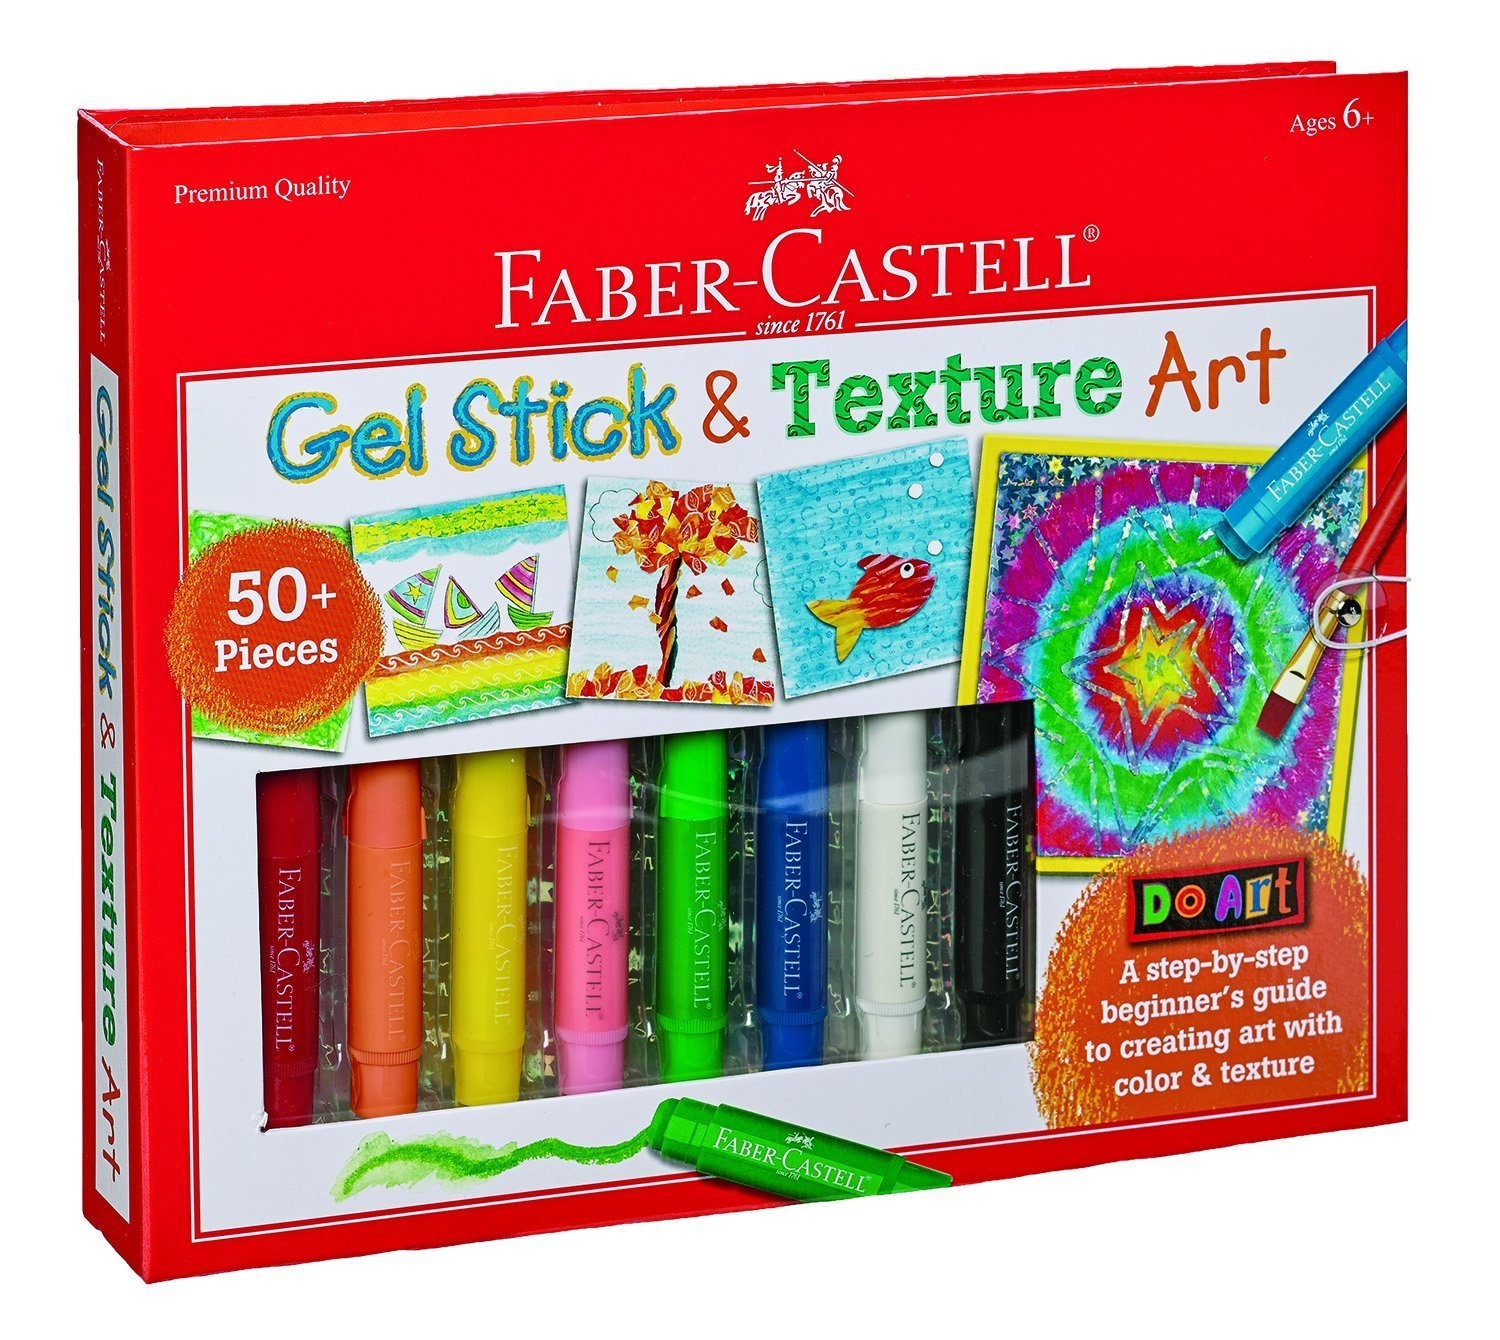 Faber-Castell craft kit: One of the gifts you can buy to make the holiday of a US child in need or in foster care through Daymaker